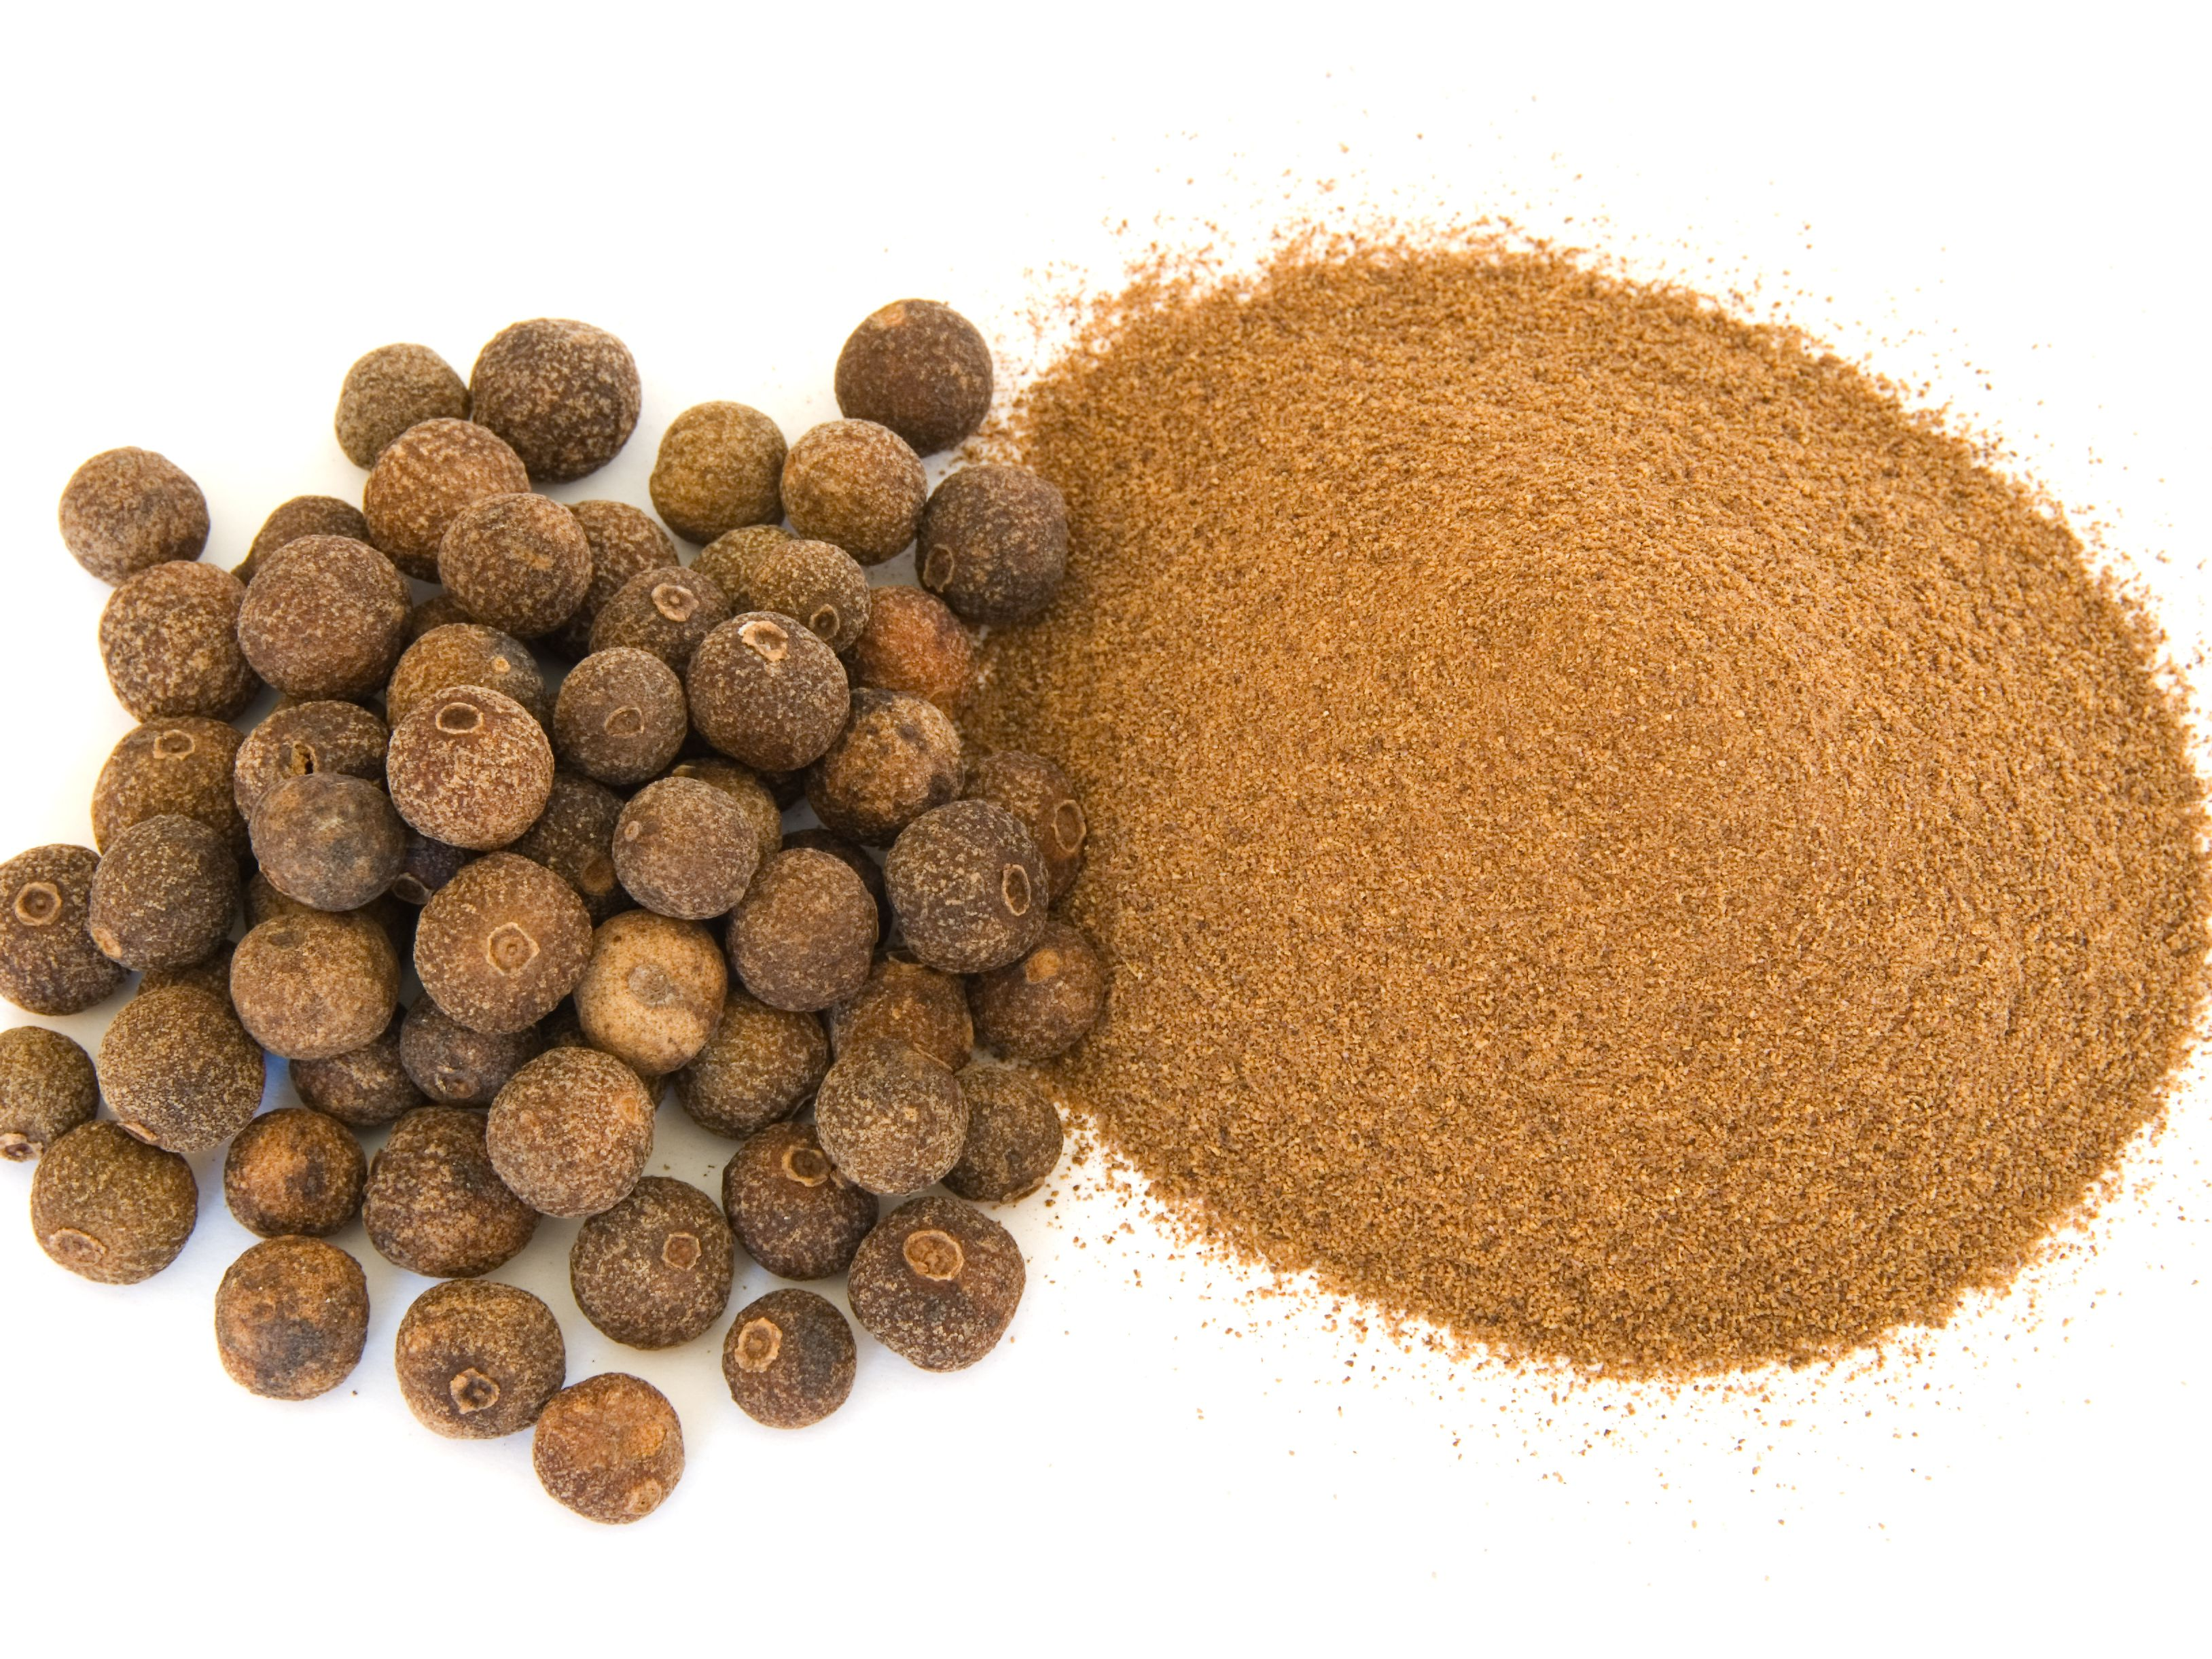 Top 5 Spices Used In Caribbean Cuisine